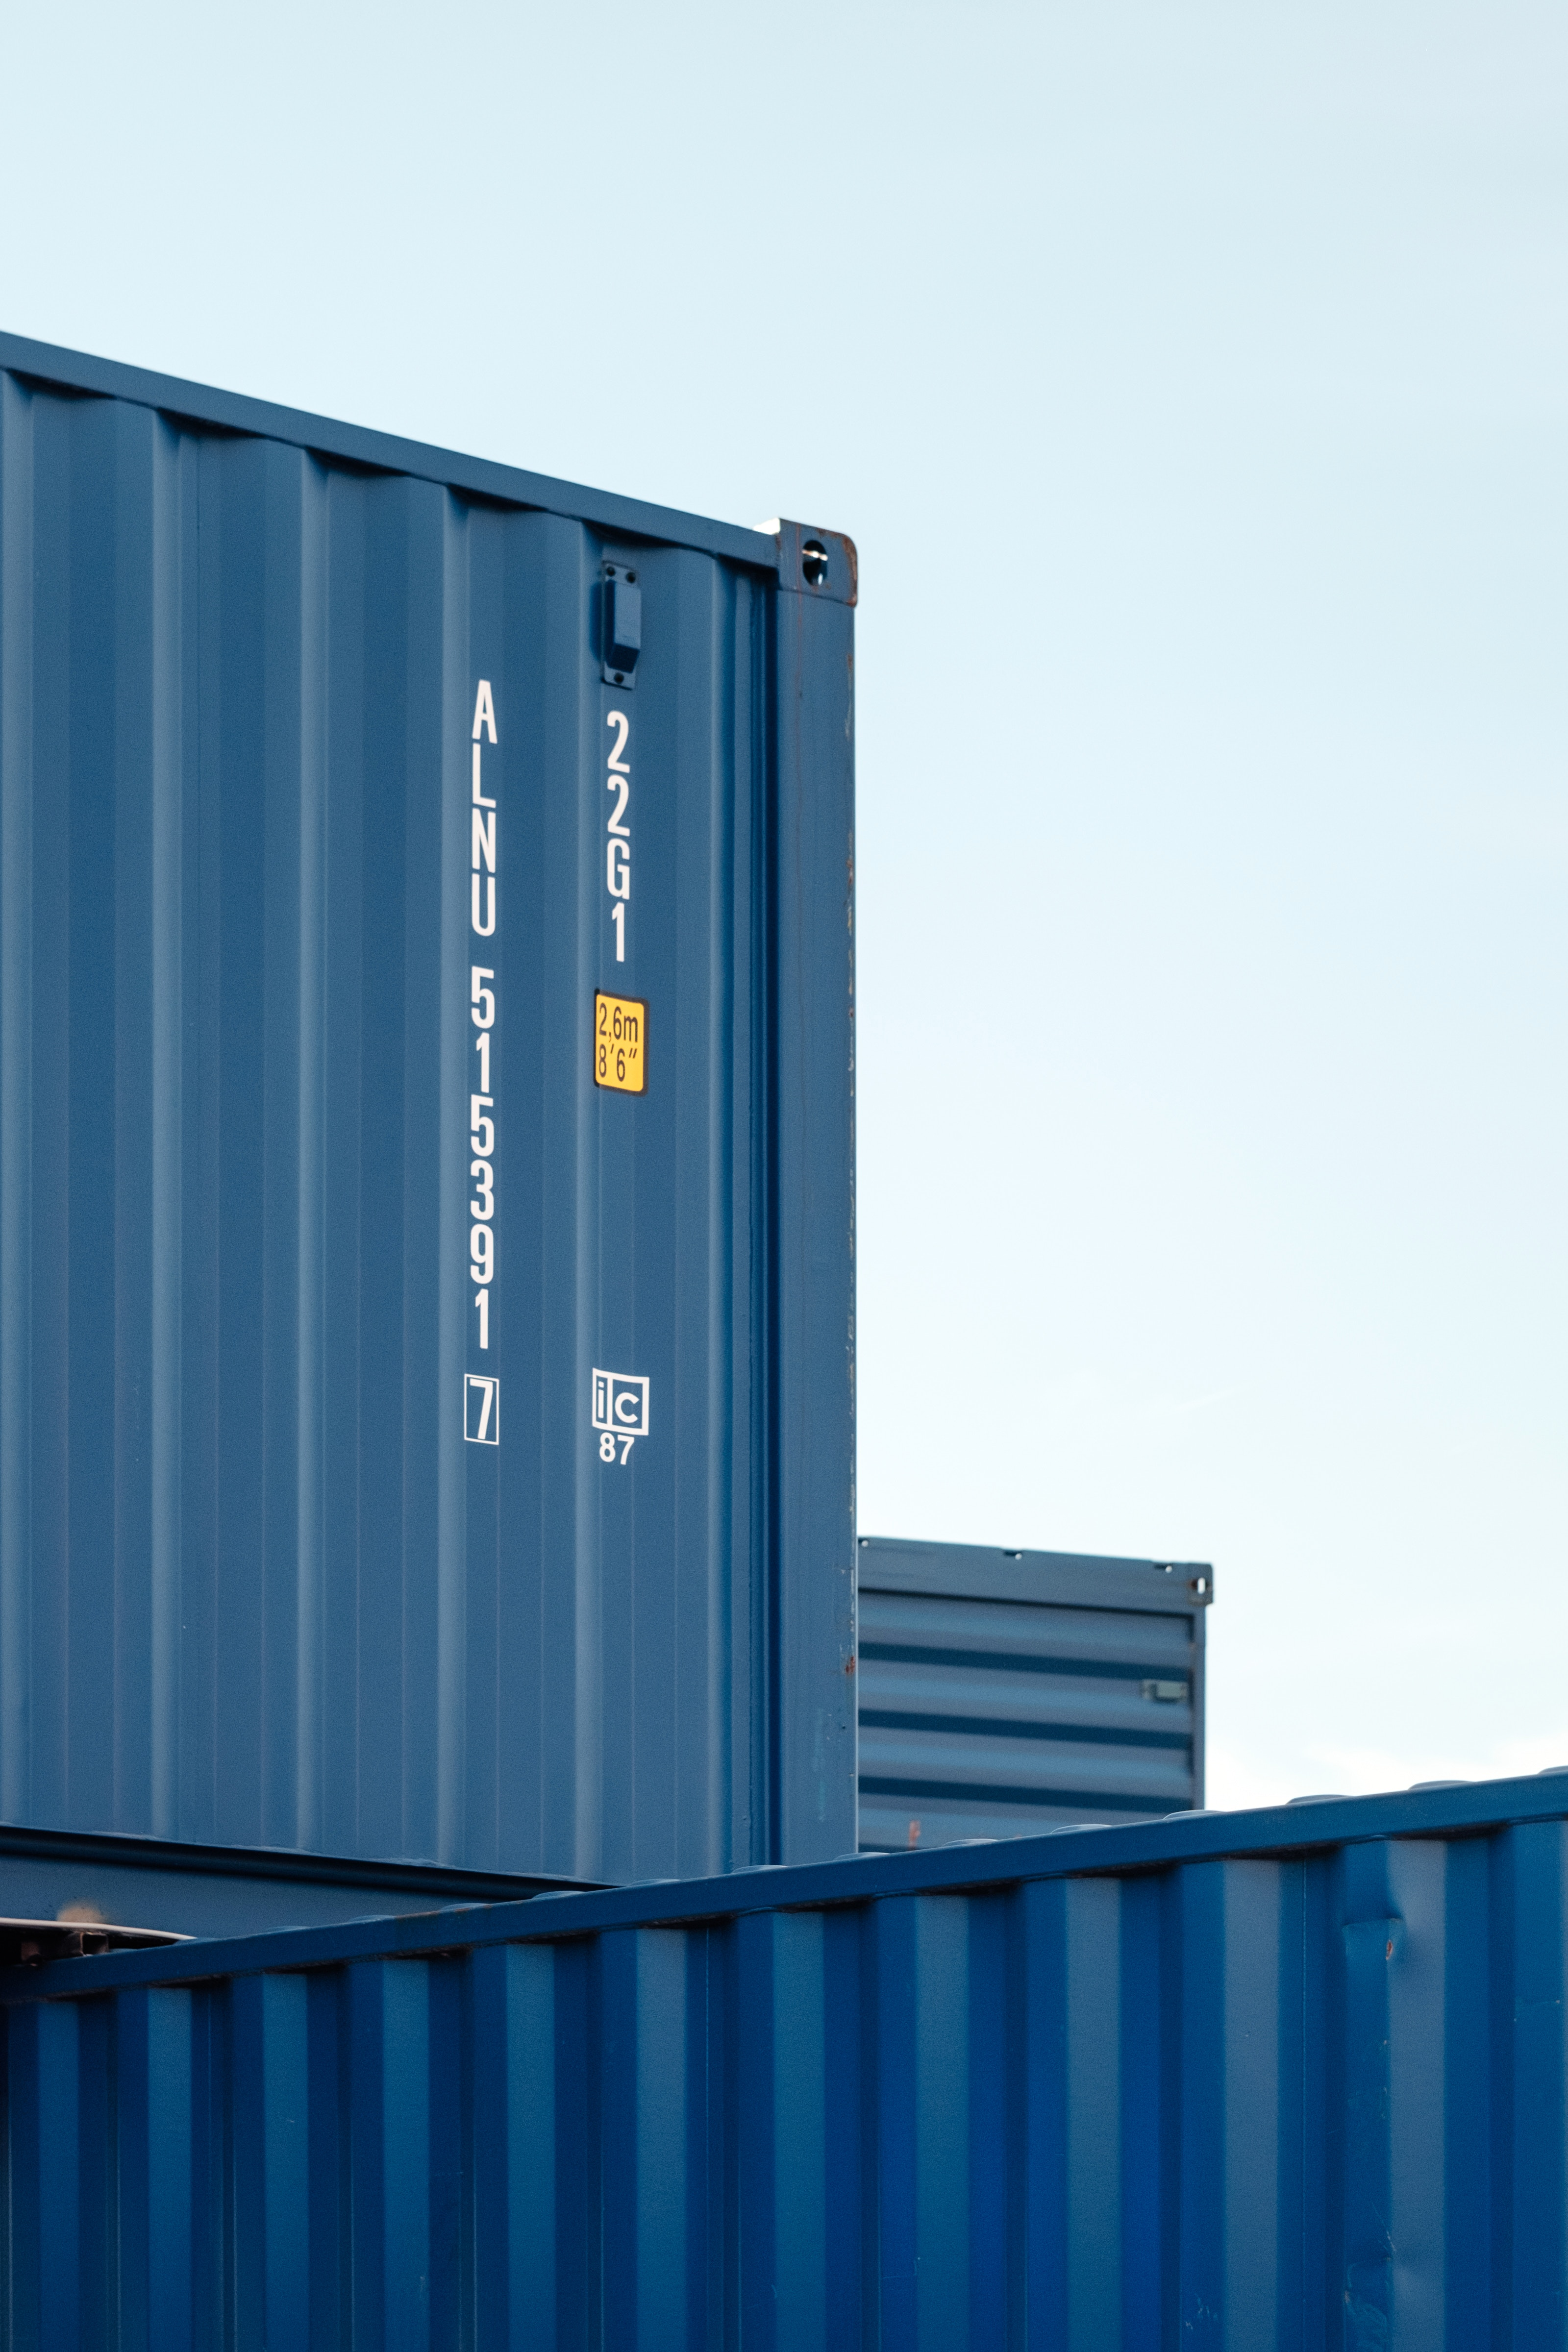 Blue storage containers stacked on top of each other.